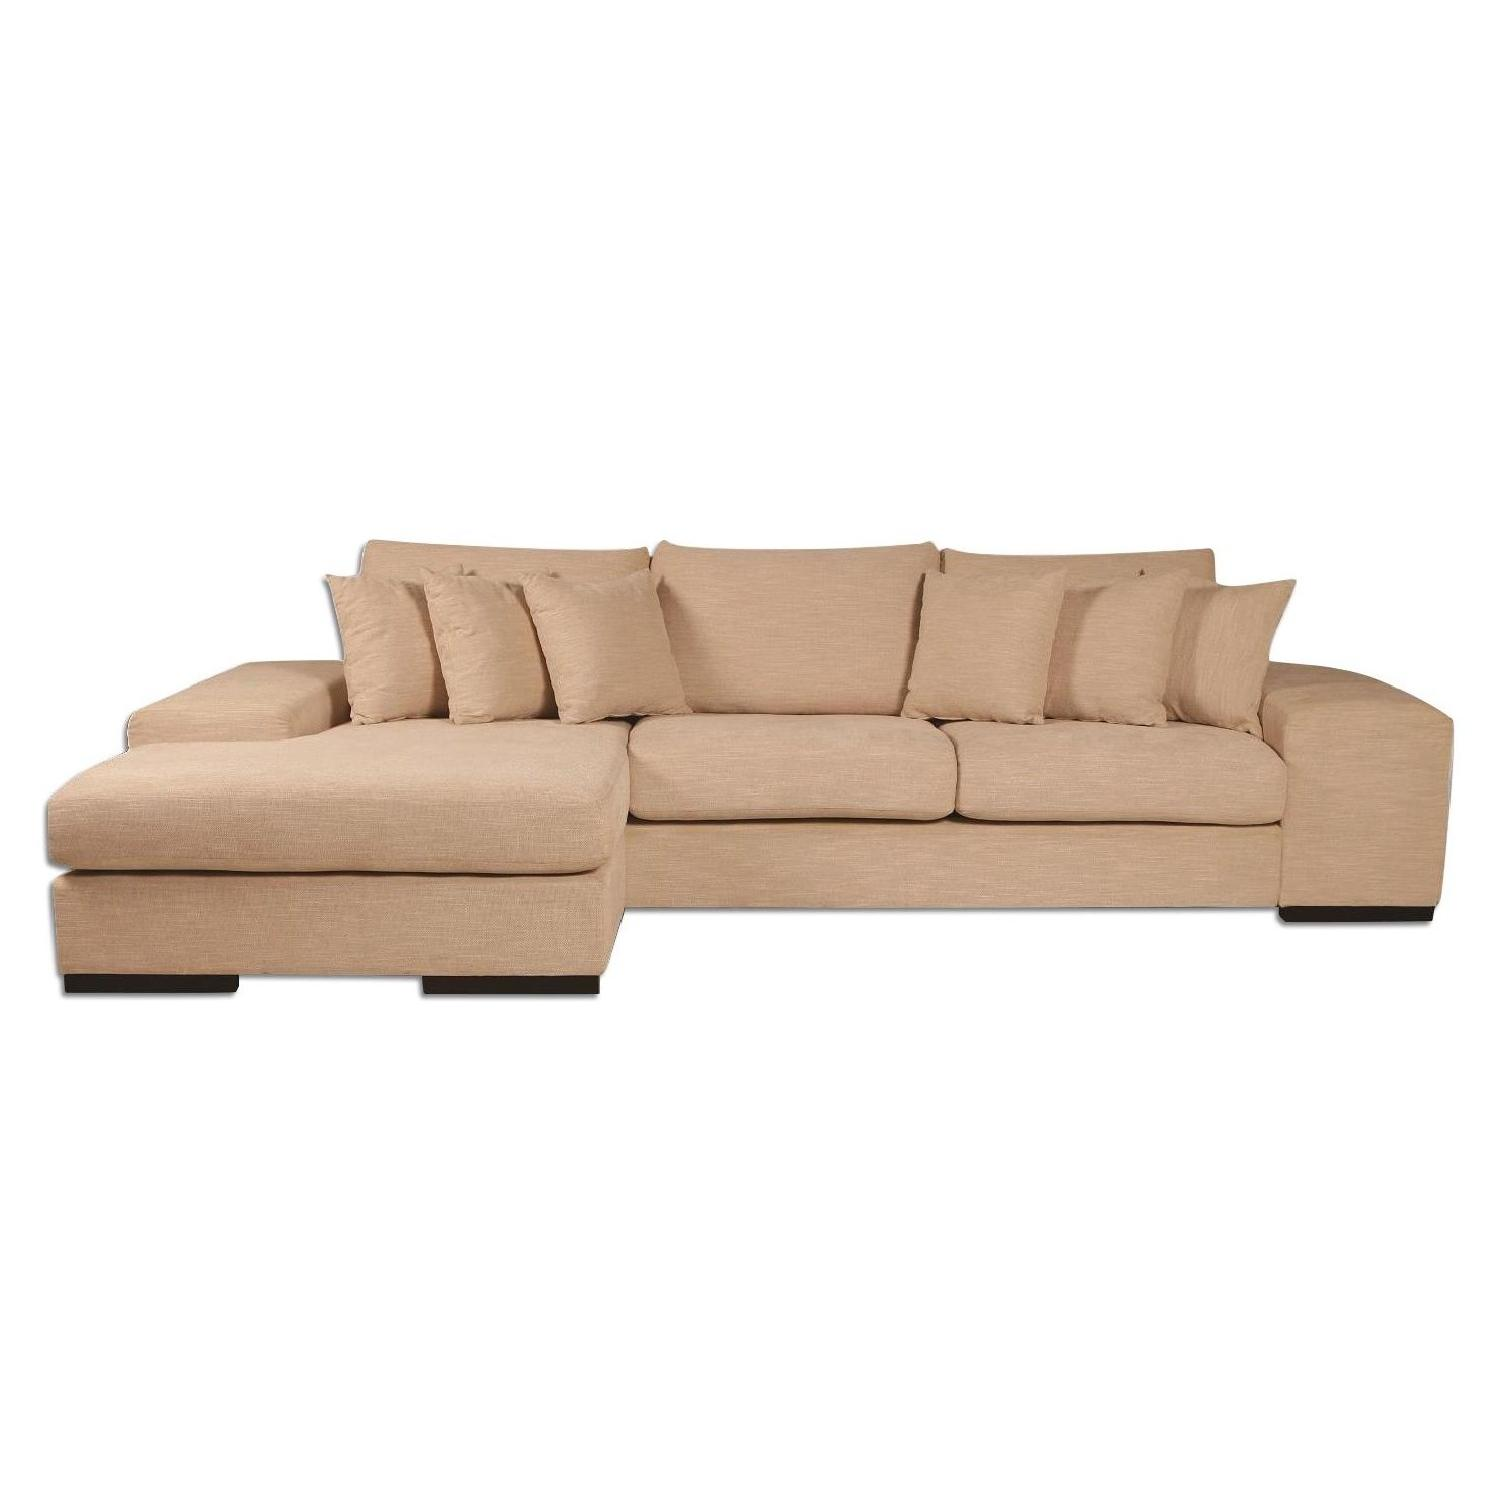 Contemporary Sectional Sofa W Reversible Chaise In Premium Wheat Woven Fabric